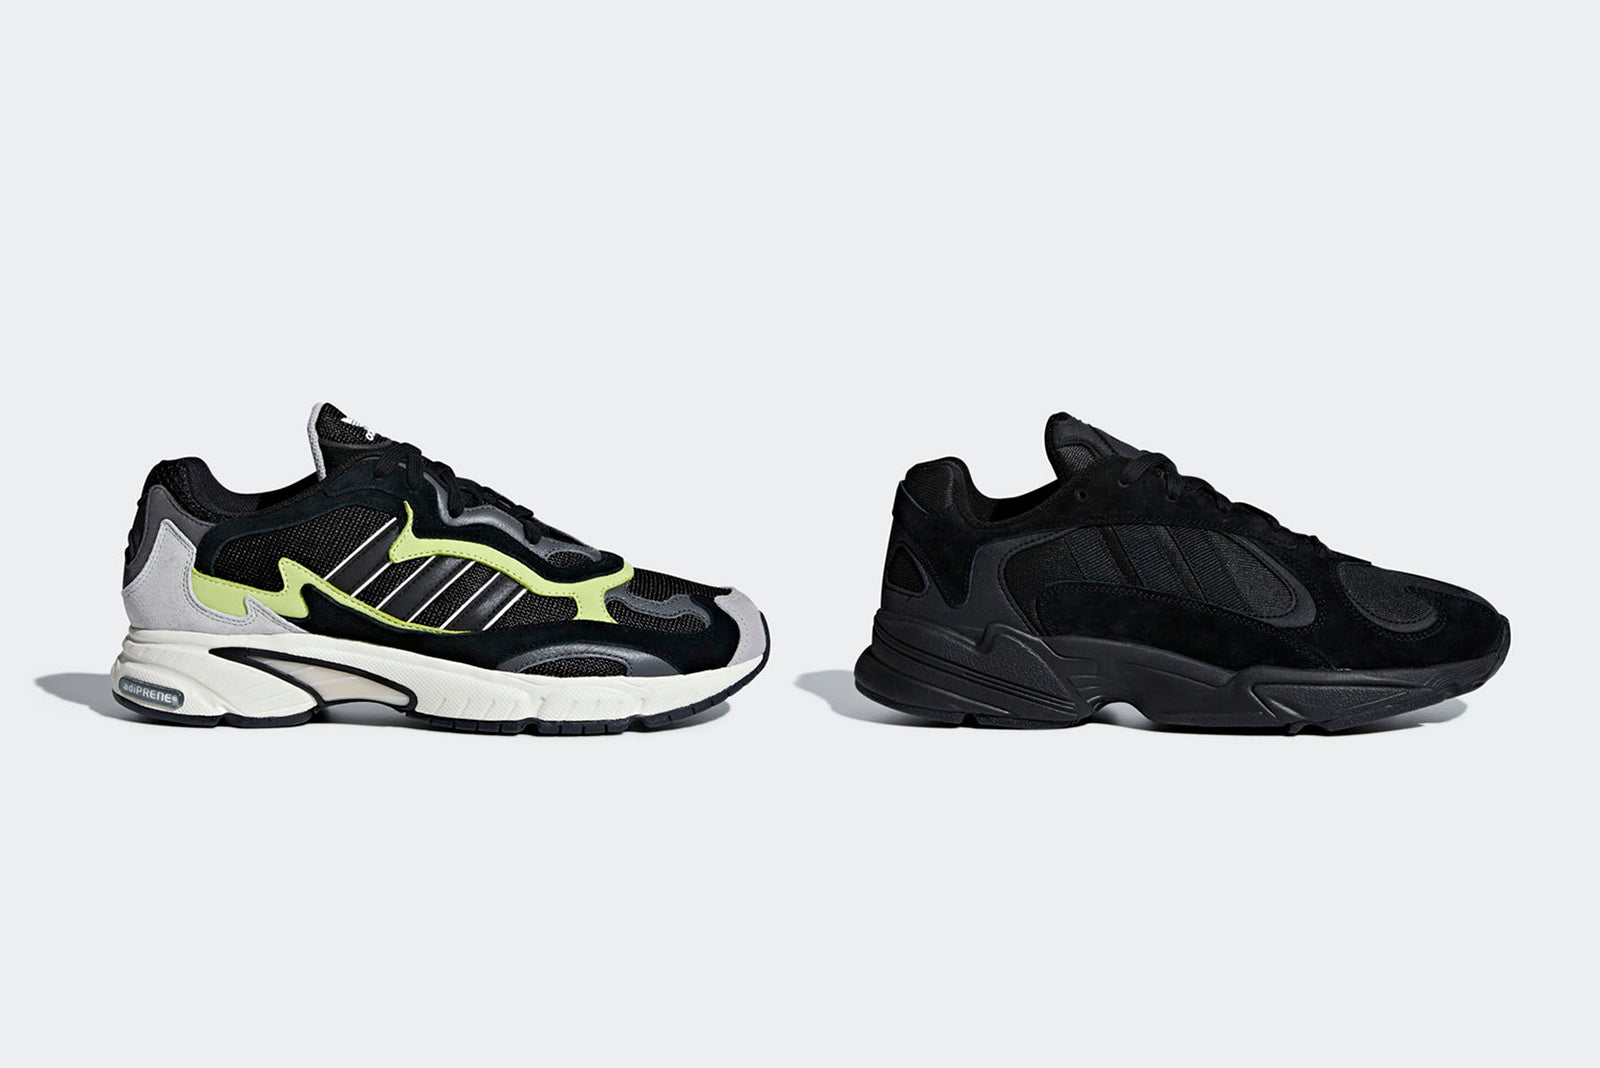 quality design a9998 feec9 adidas kick off October with two big nods to vintage running styles from  the 90s. First up is the Yung 1, Fresh from starring in the adidas x  Dragonball Z ...